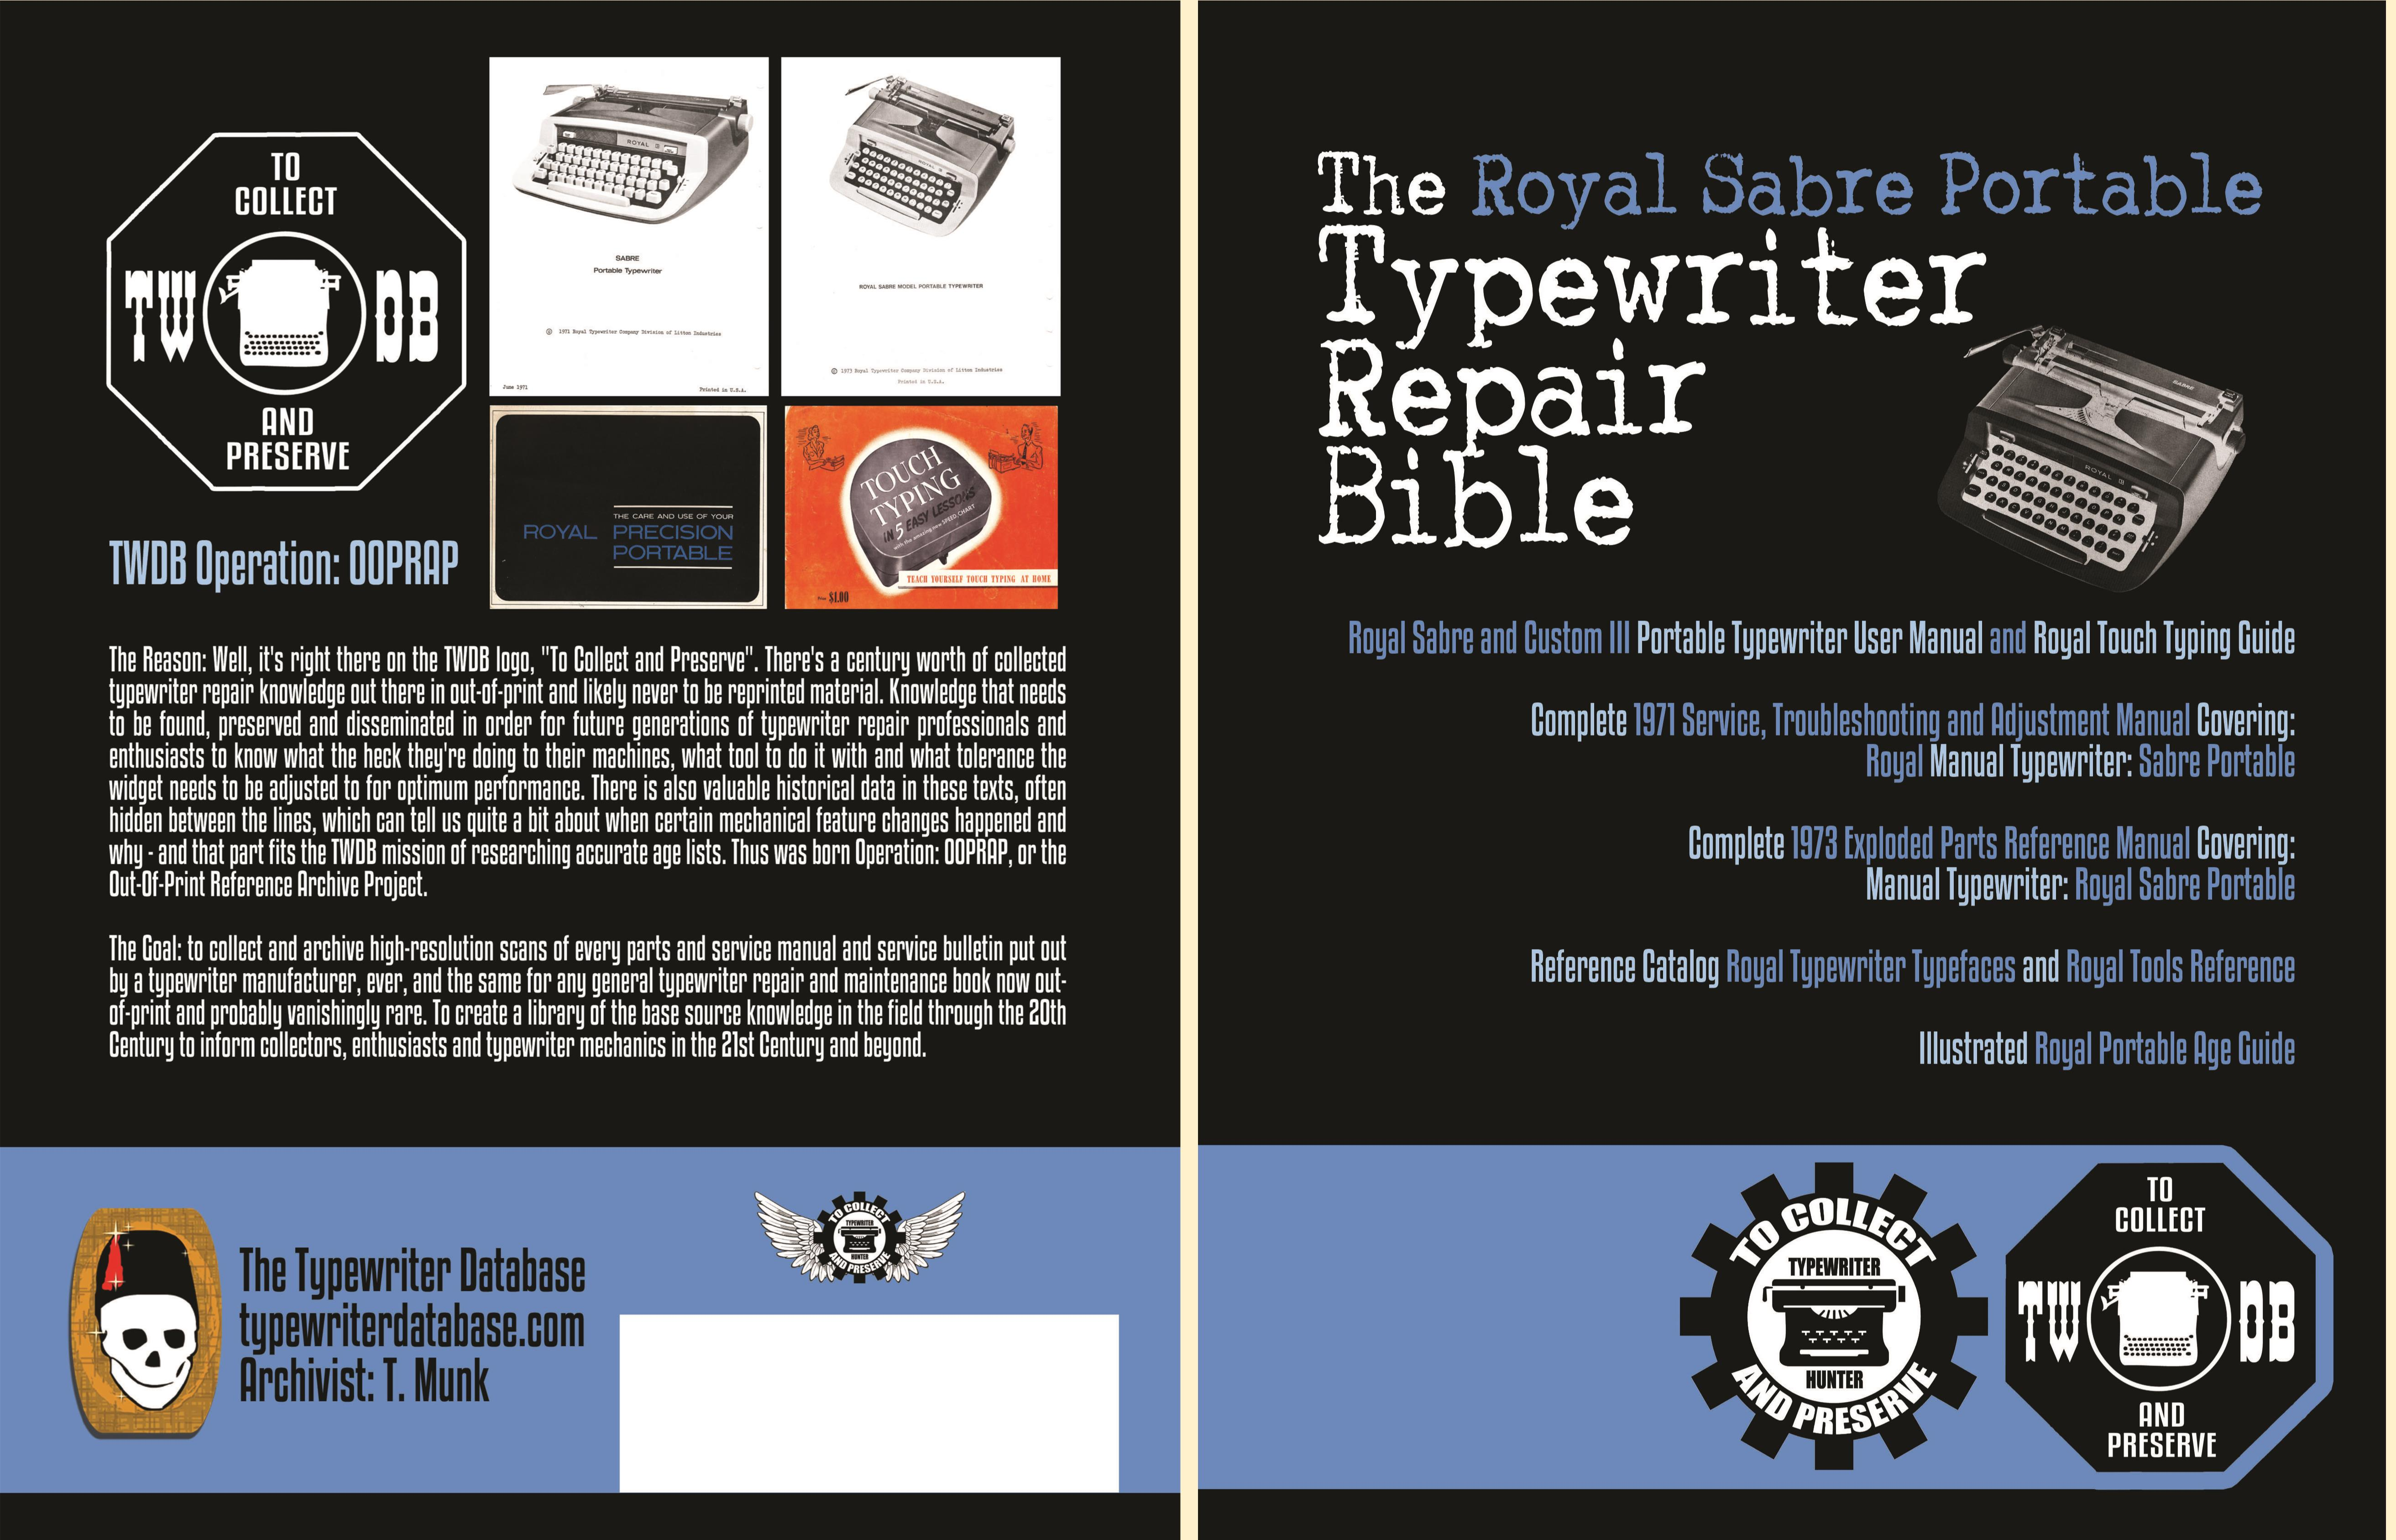 The Royal Sabre Portable Typewriter Repair Bible cover image